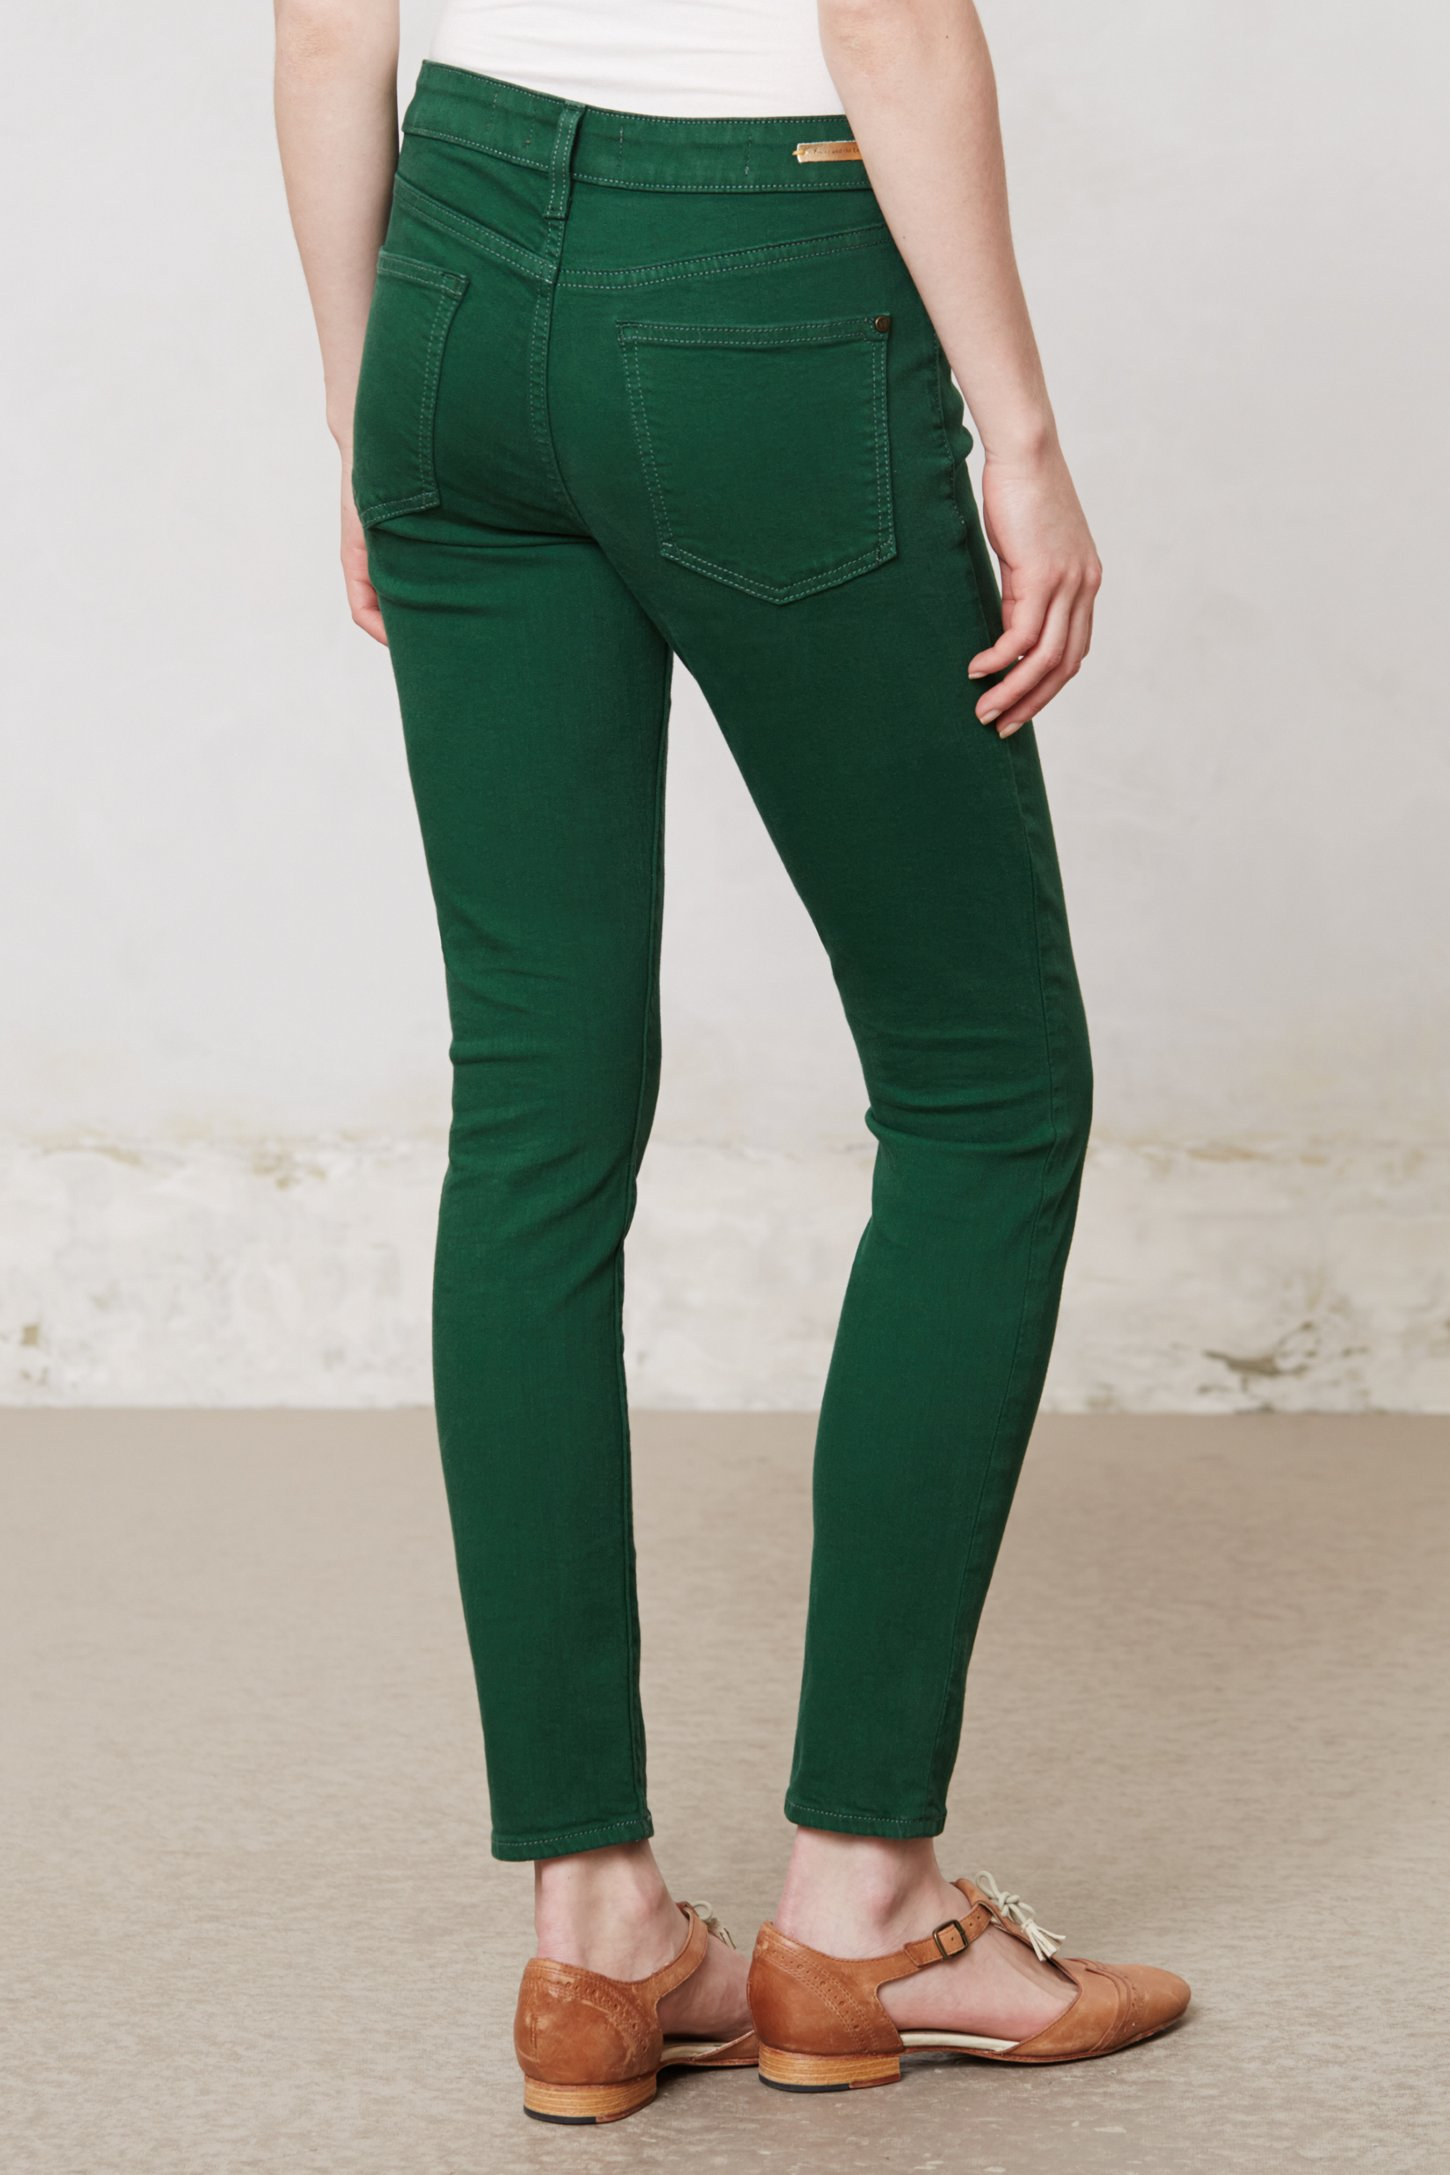 15 Green Jeans Images And Ideas For Women And Men Styles